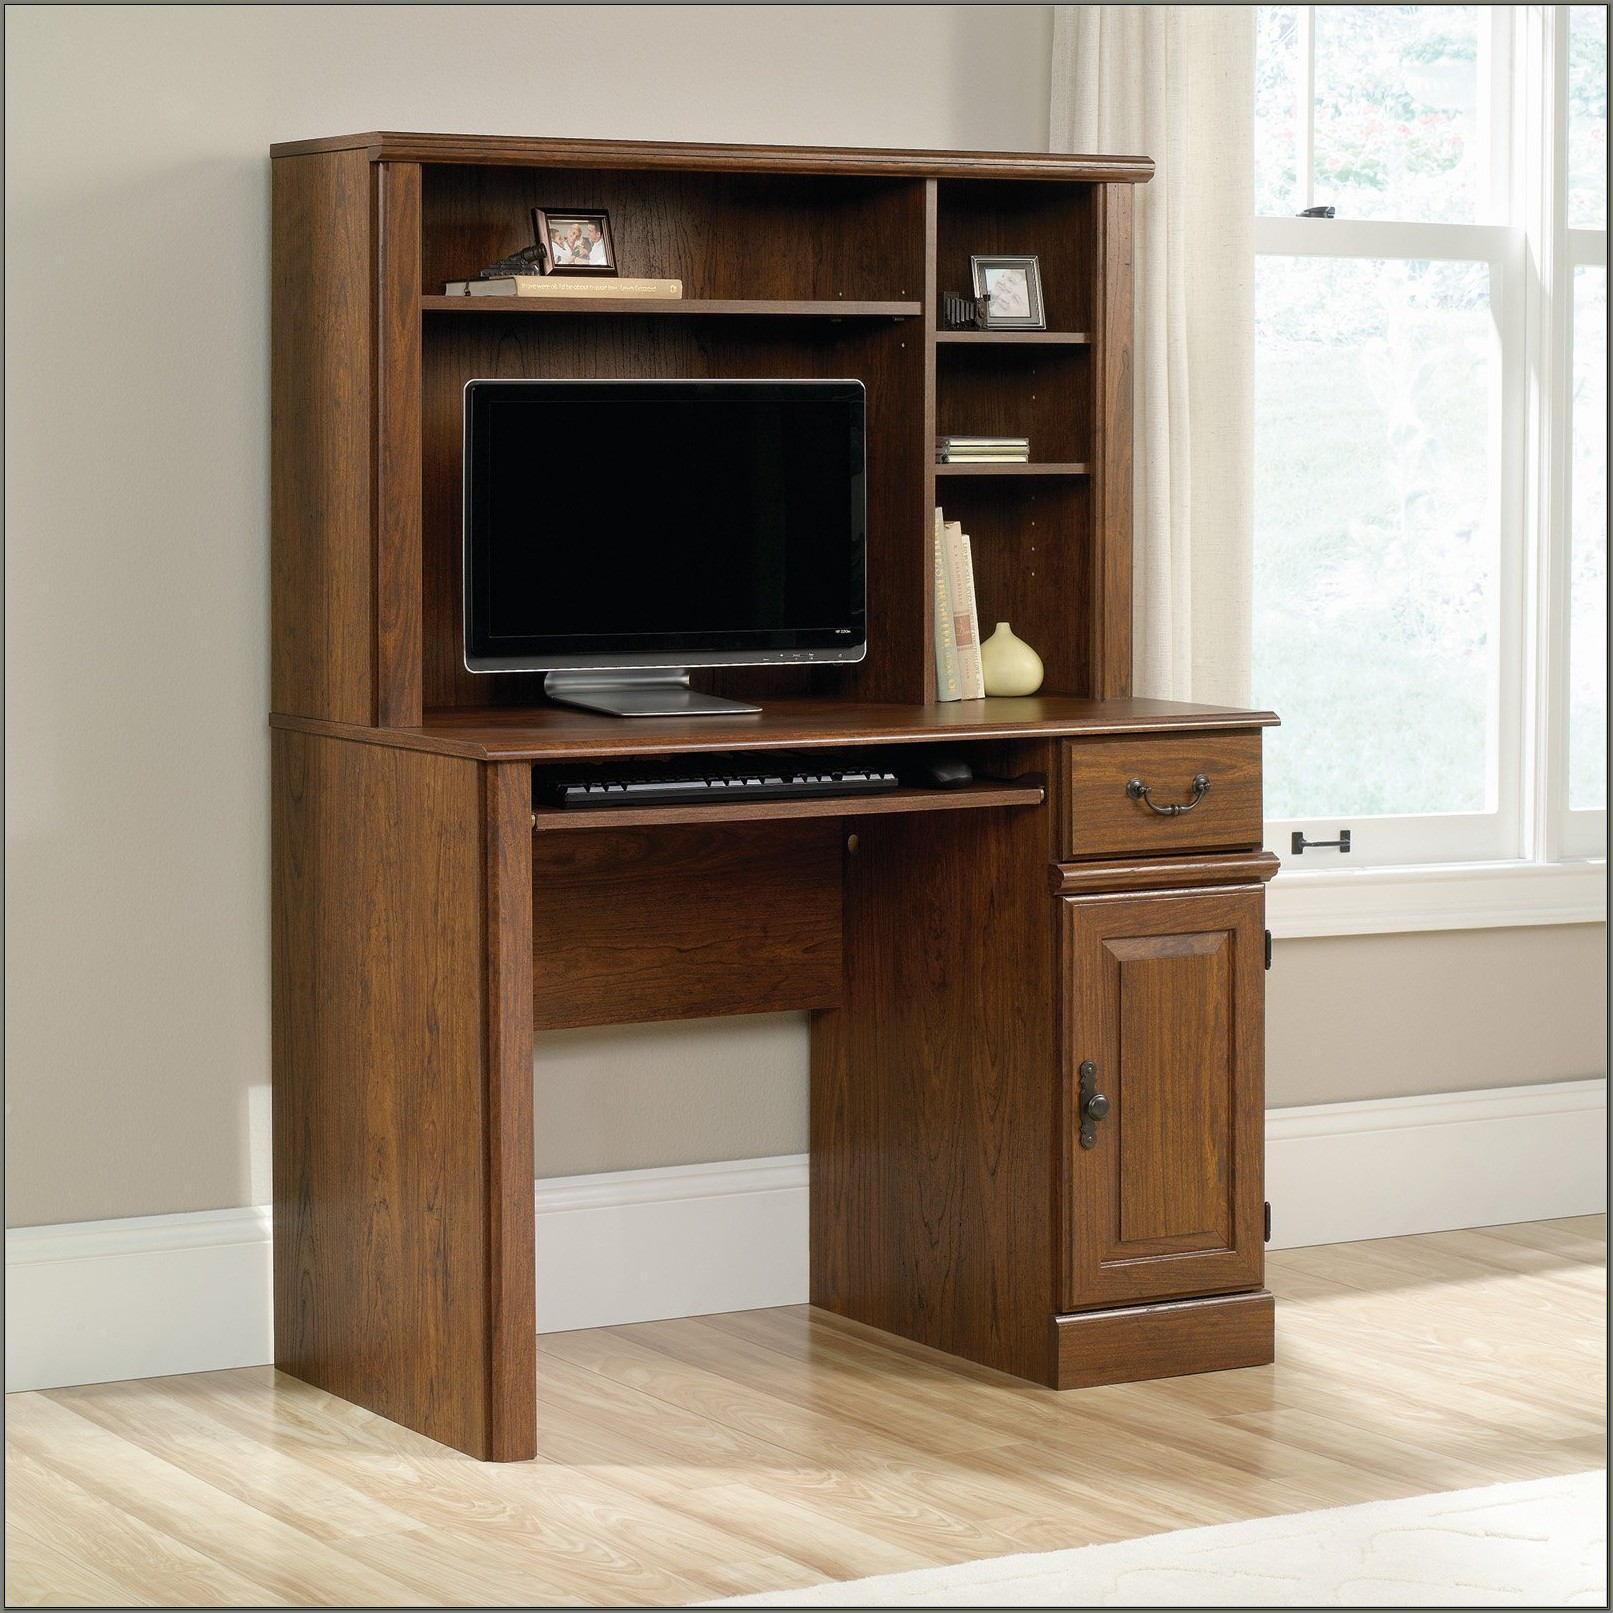 Sauder Computer Desk With Hutch Walmart